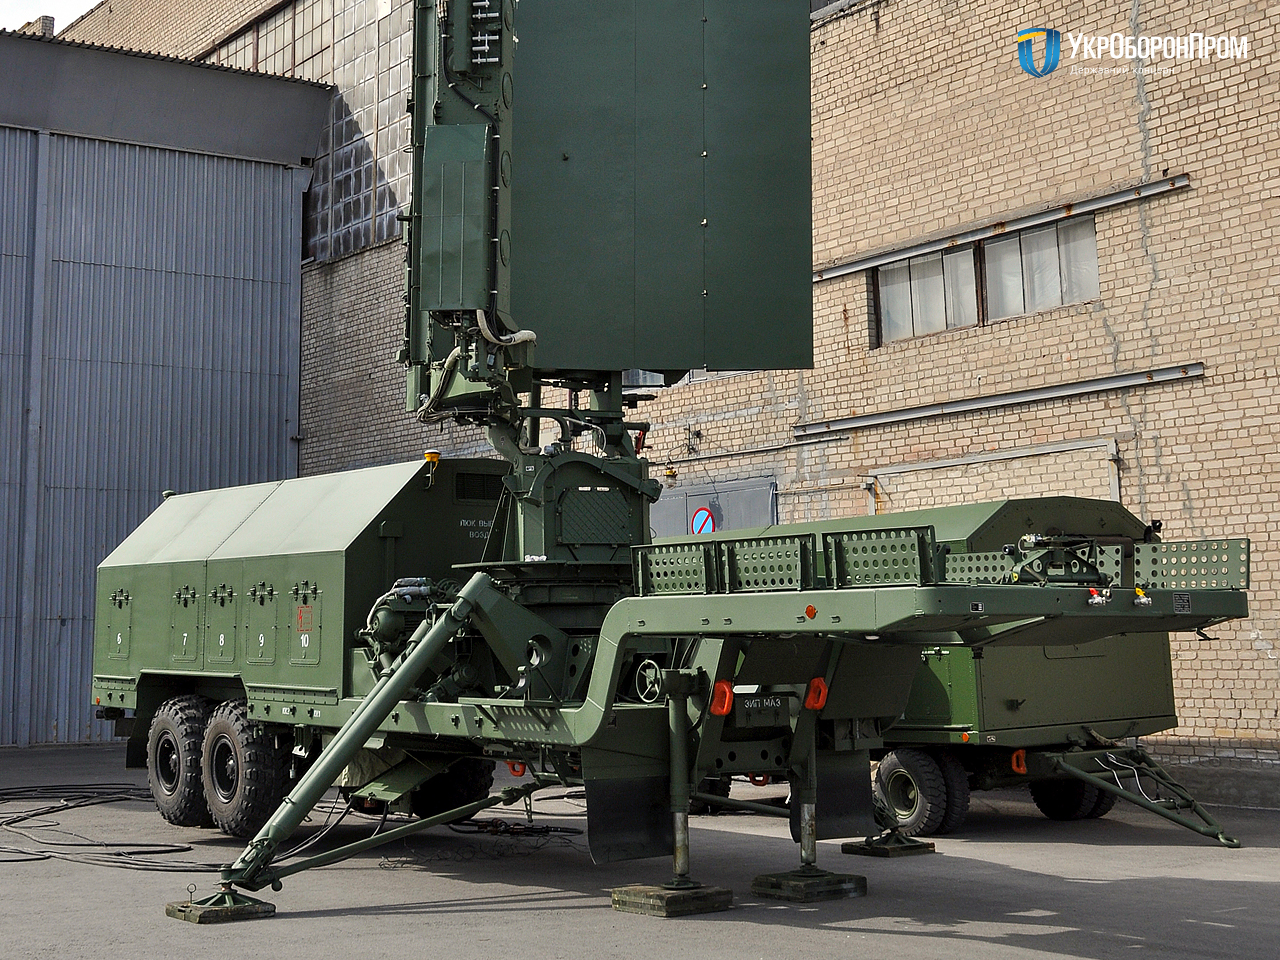 Ukroboronprom Unit Upgrades Ukrainian Radars